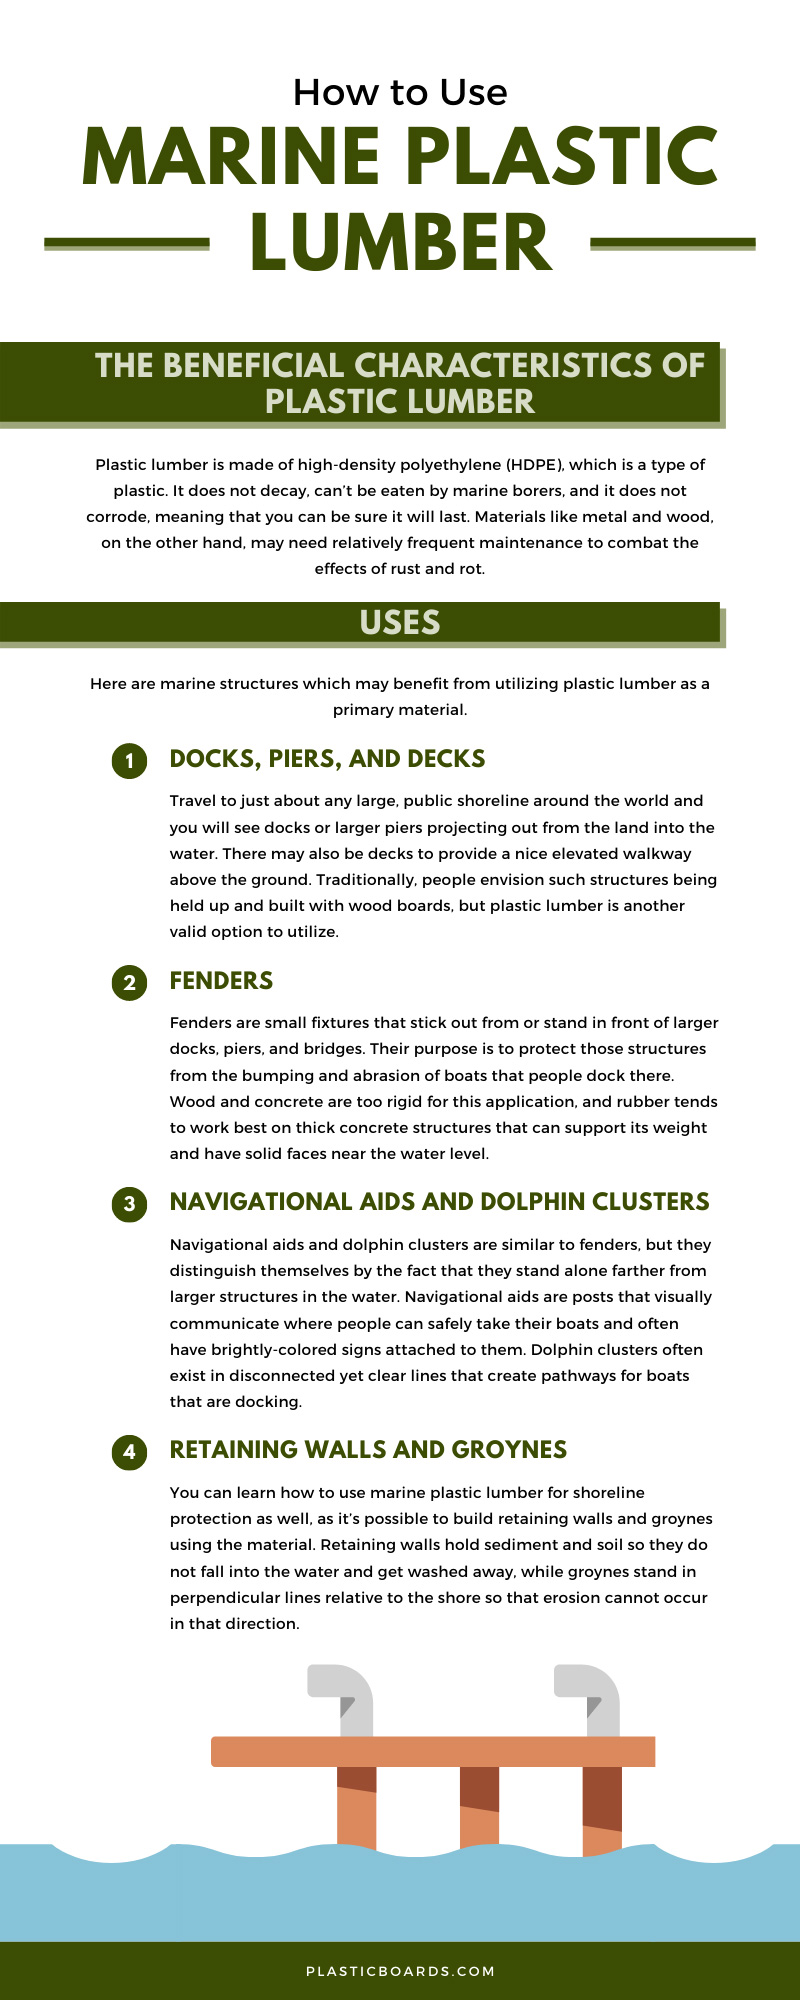 How to Use Marine Plastic Lumber